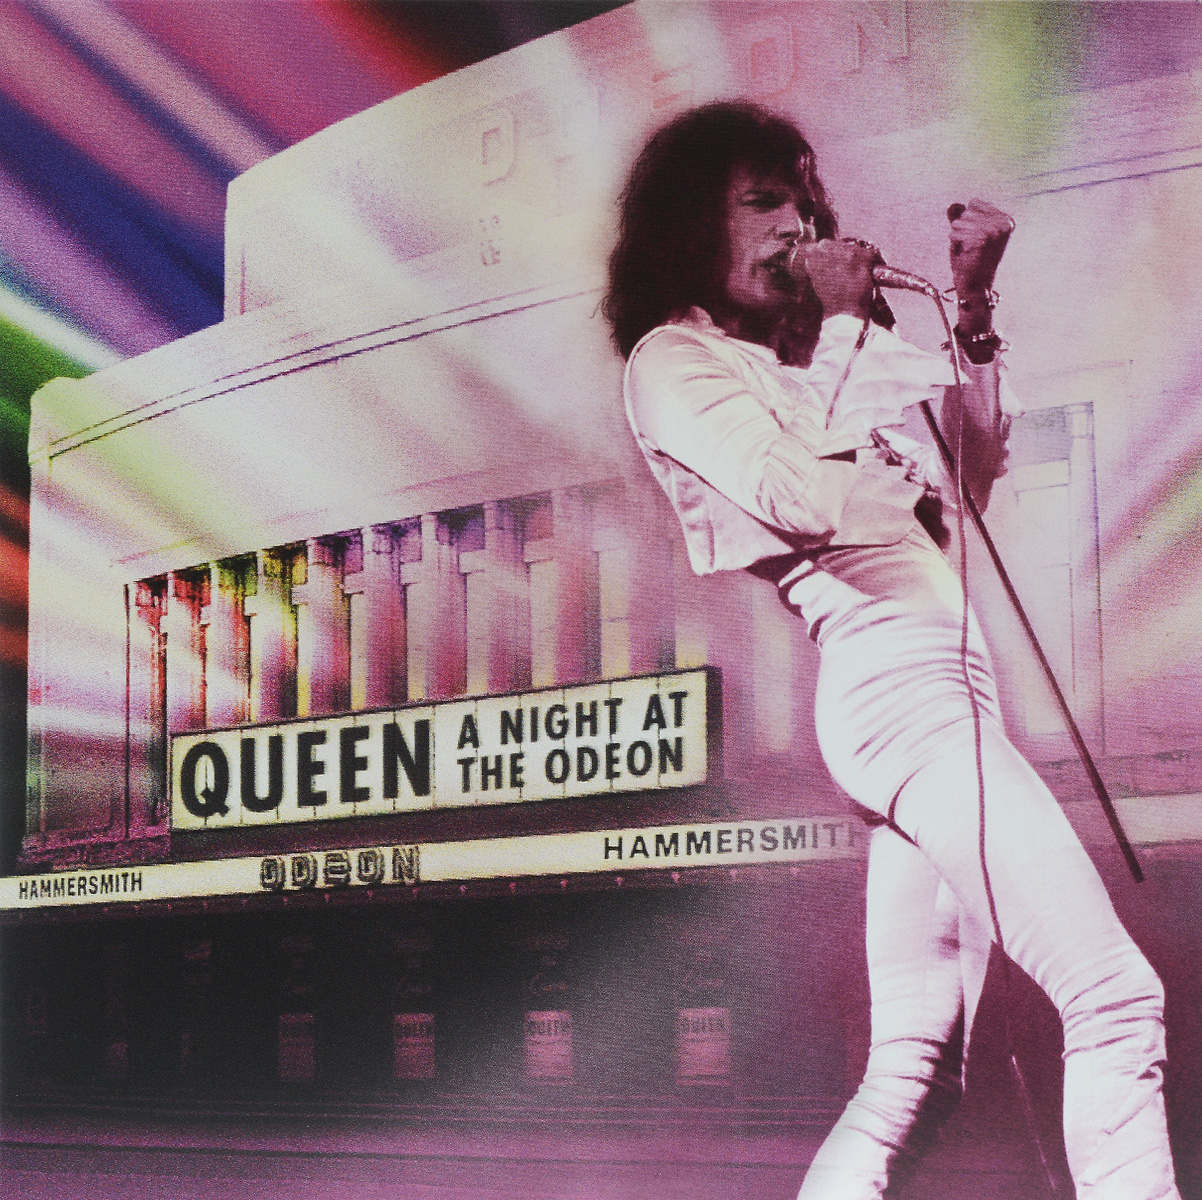 Queen Queen. A Night At The Odeon (2 LP) queen queen a night at the odeon anniversary limited edition cd lp dvd blu ray